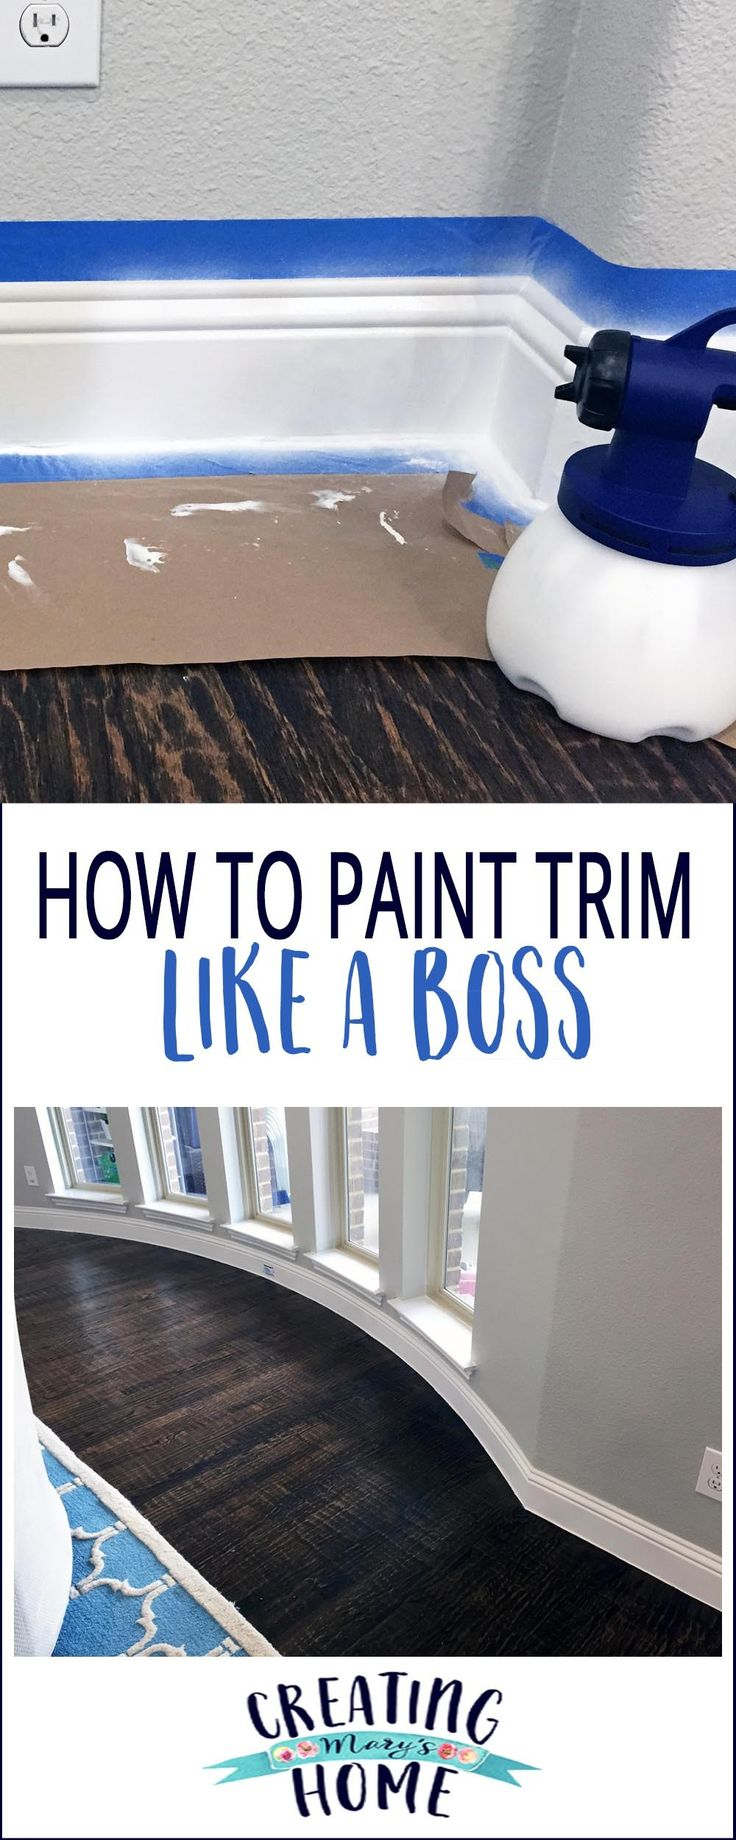 How To Paint Trim Like a Boss